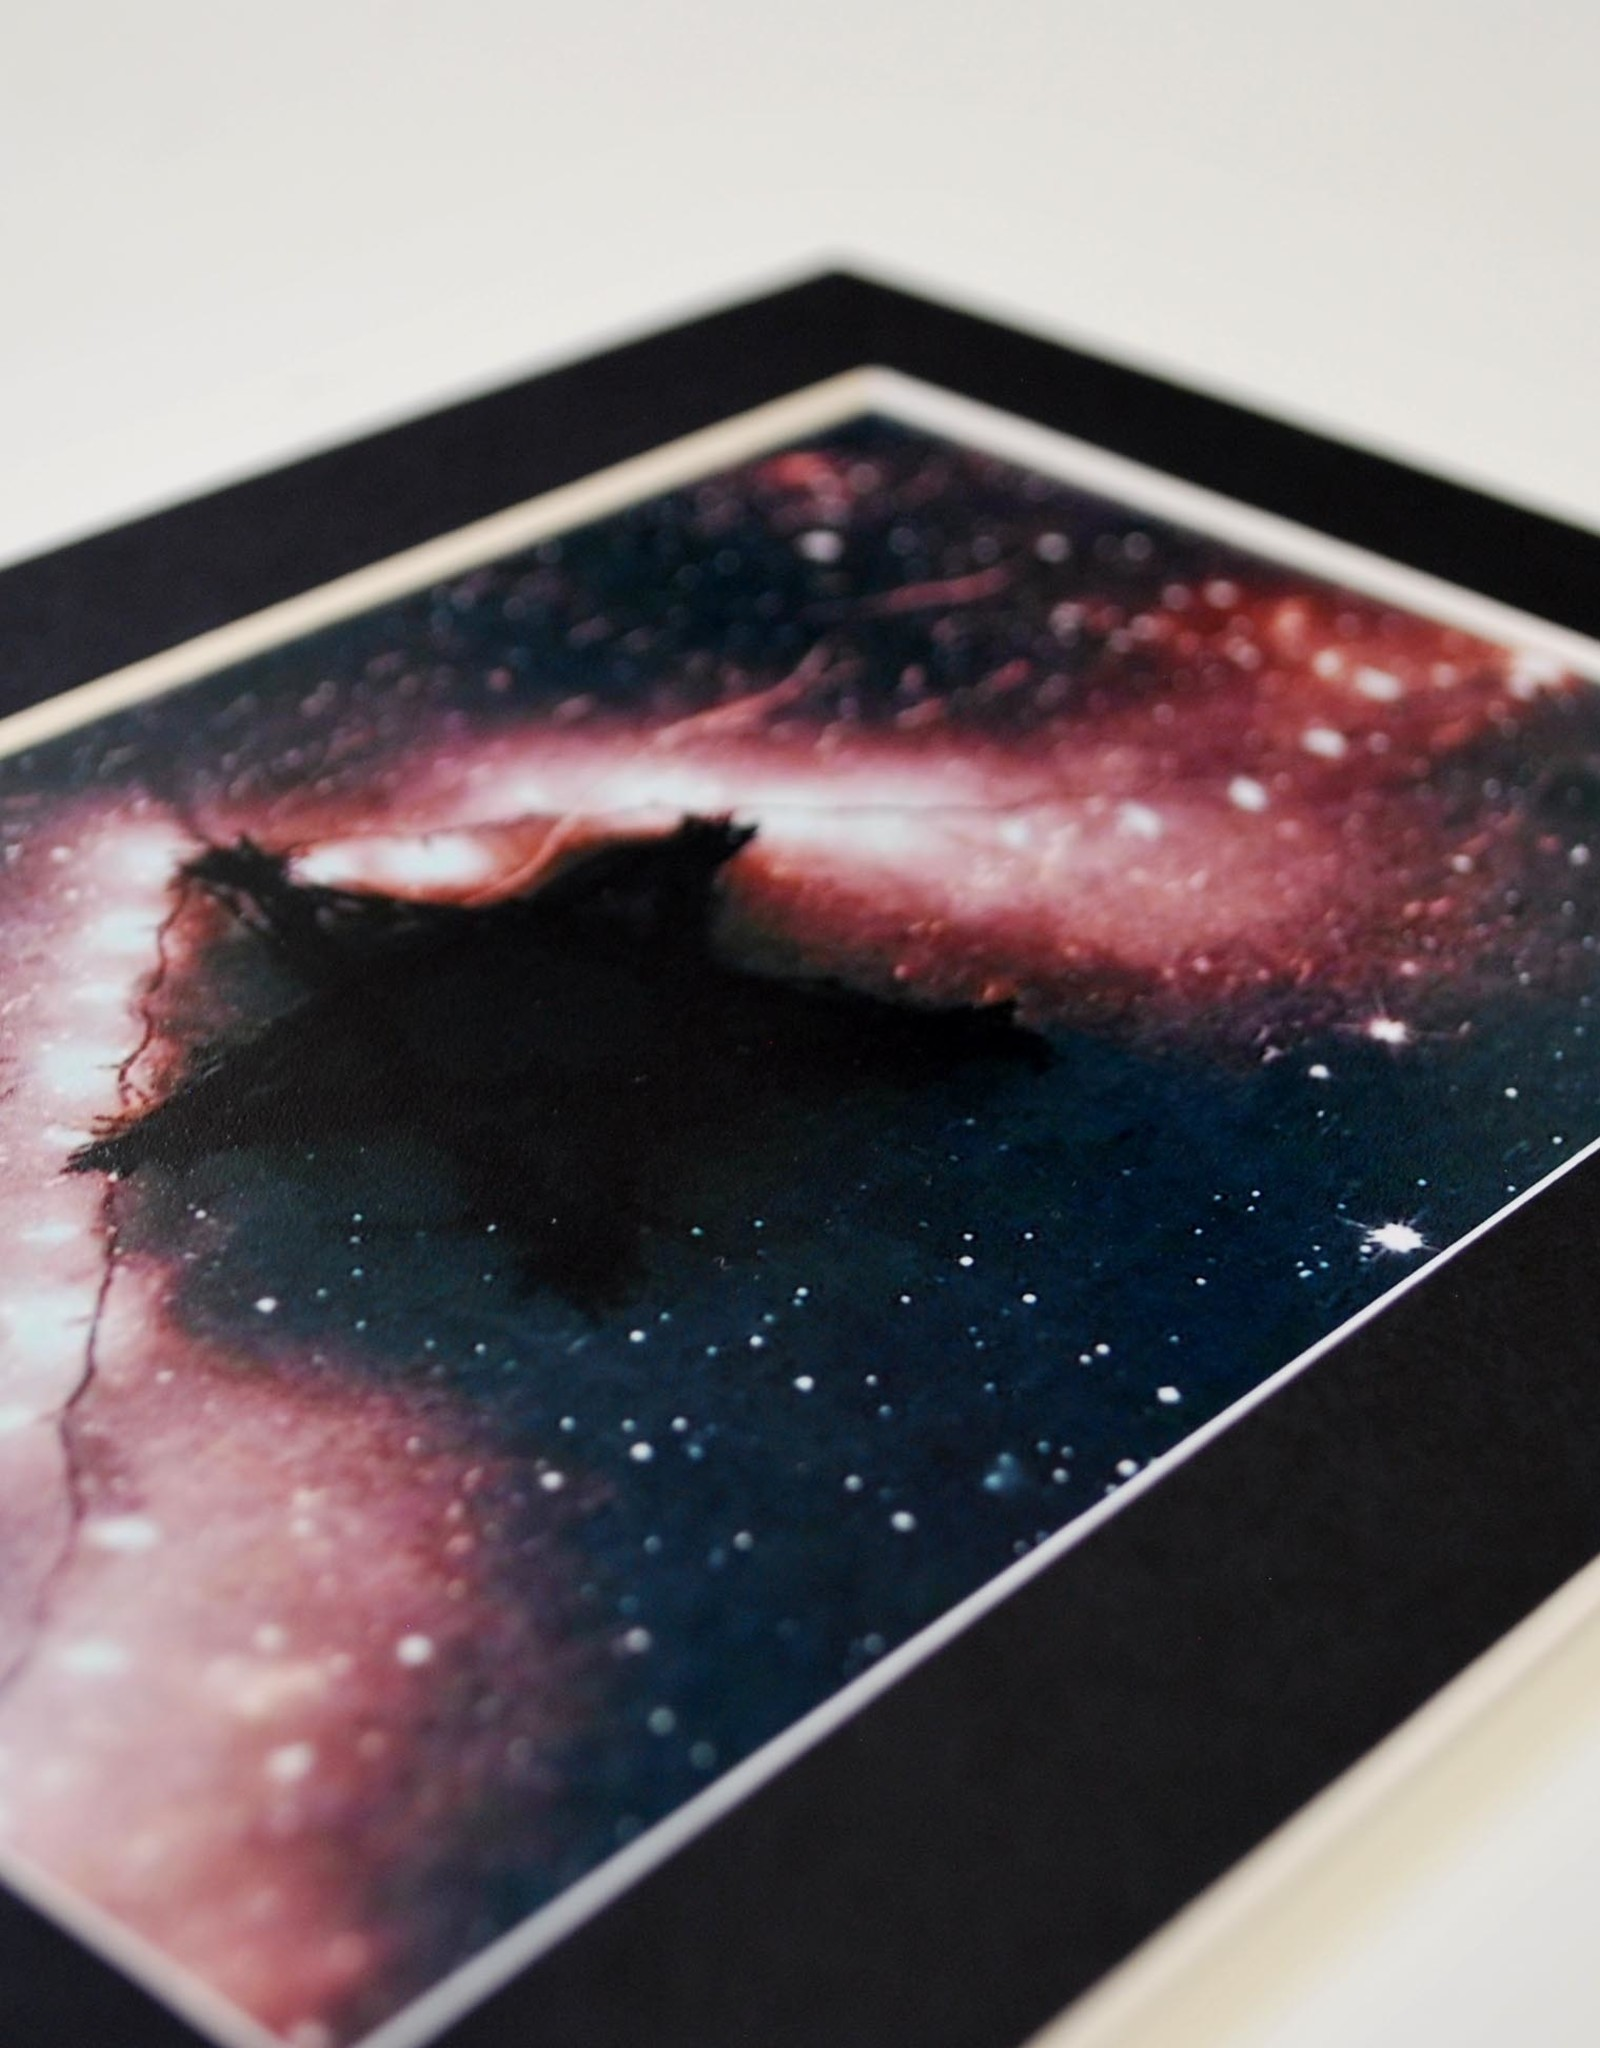 Daria Percy Untitled 1 (star) Matted 4x6 photograph by Daria Percy